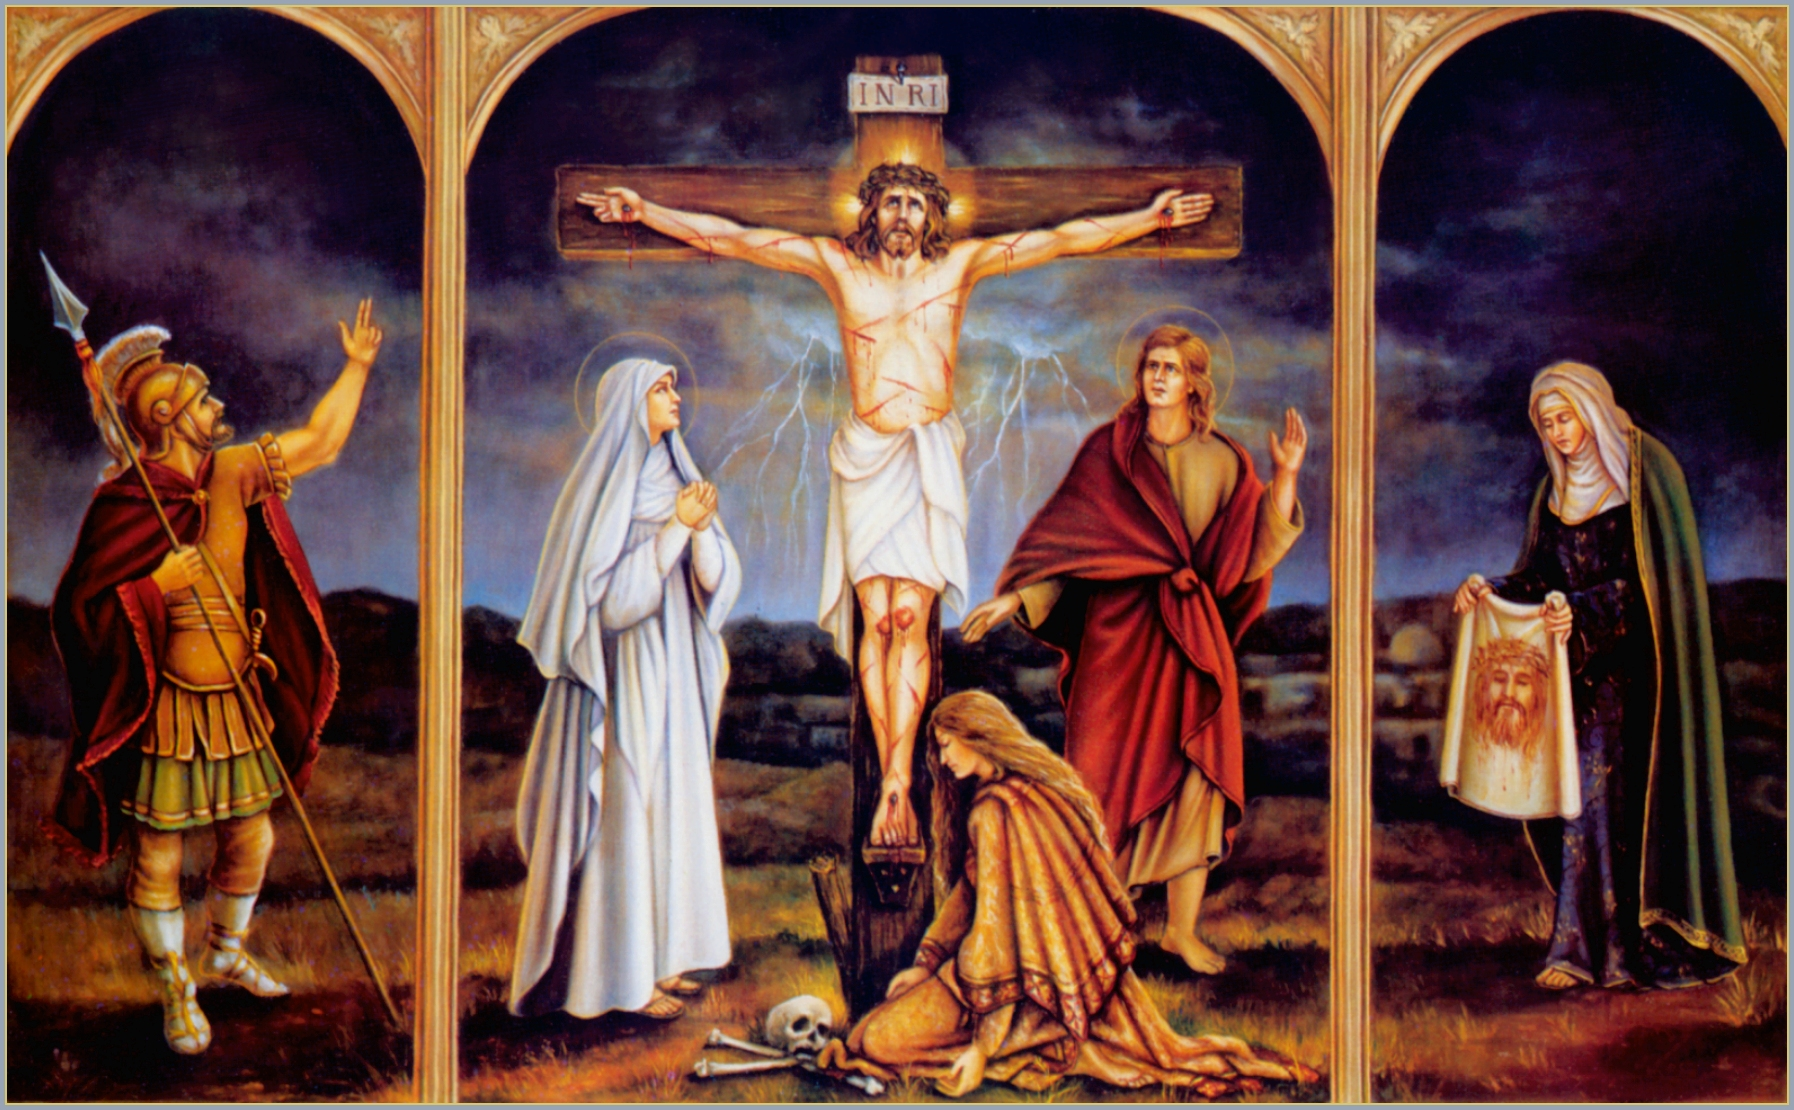 christology the life of jesus christ He is commonly referred to as jesus christ, where christ is a greek-derived title meaning anointed one which corresponds to the hebrew-derived messiah the main sources of information regarding jesus' life and teachings are the four canonical gospels of the new testament: matthew, mark, luke, and john.